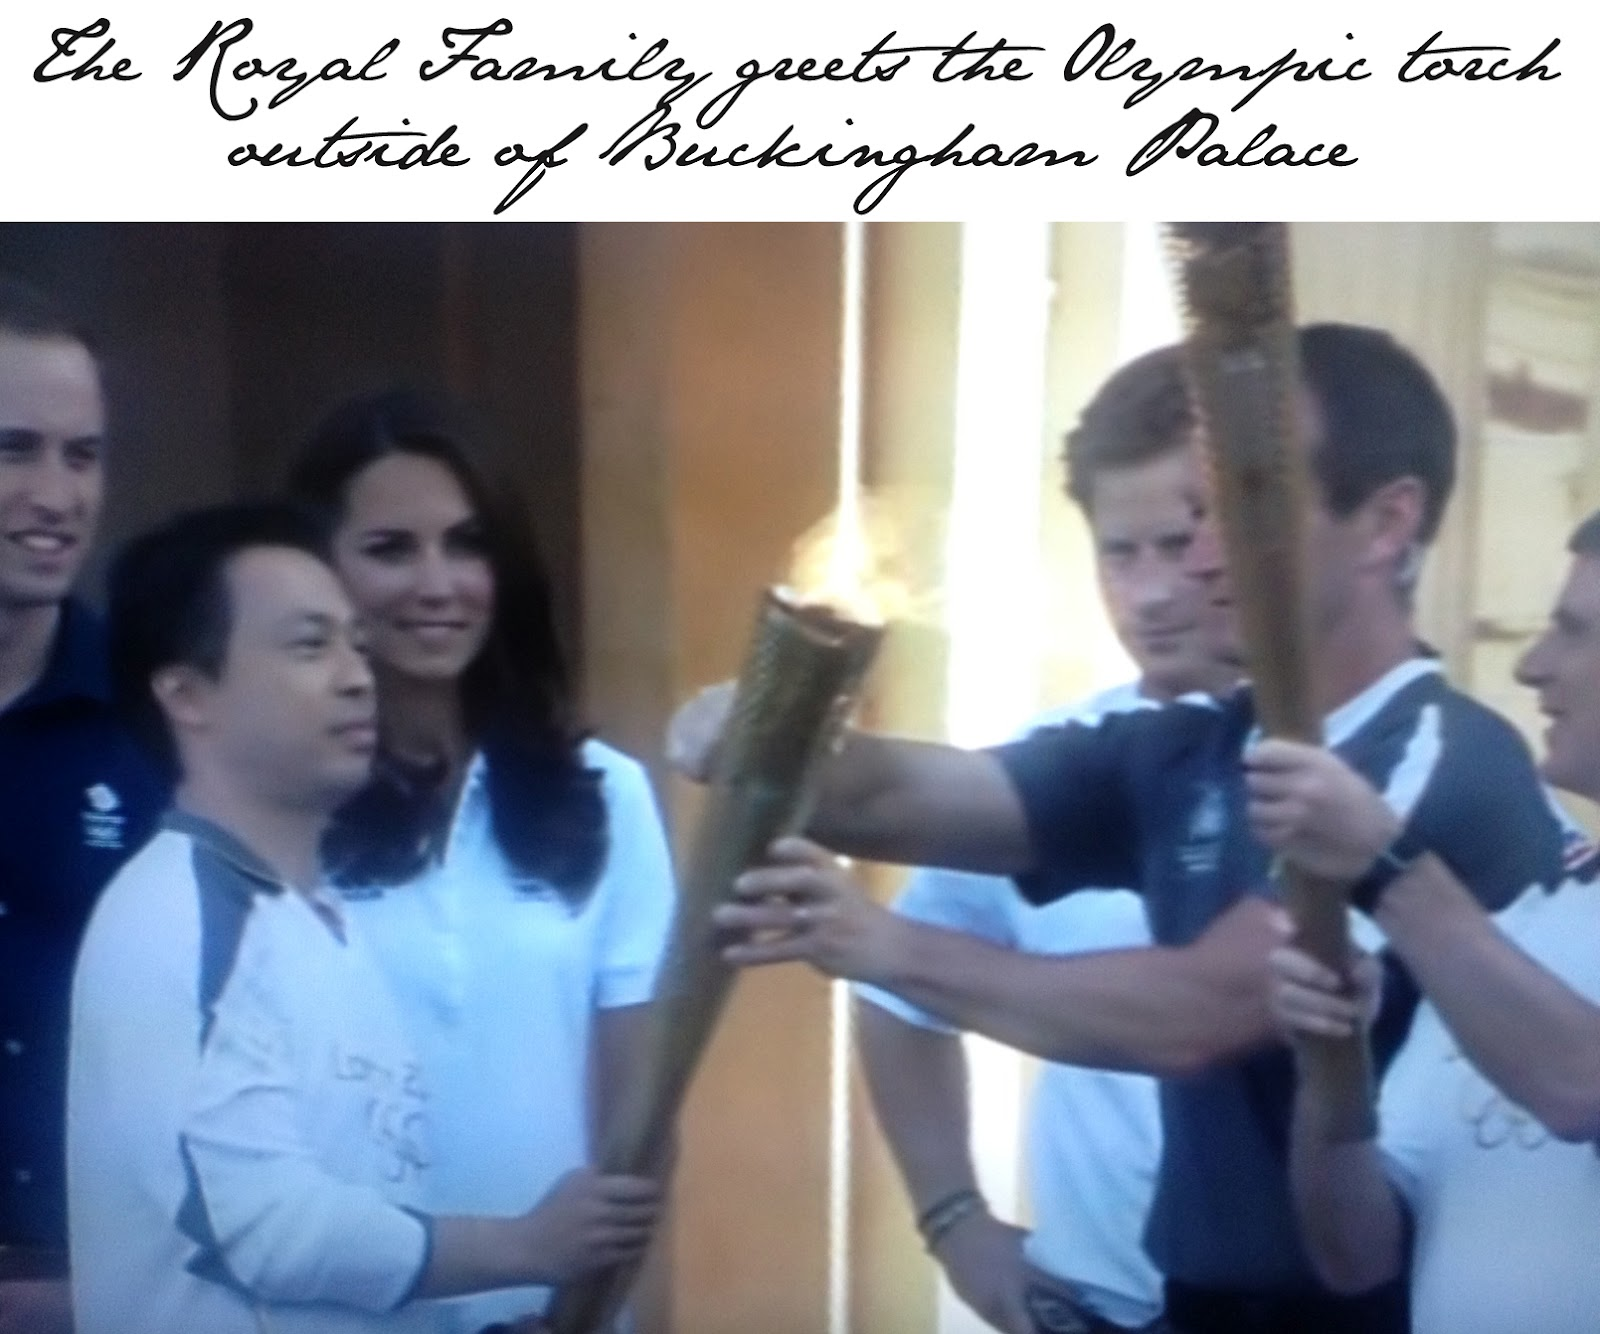 Kate Middleton Olympic Torch